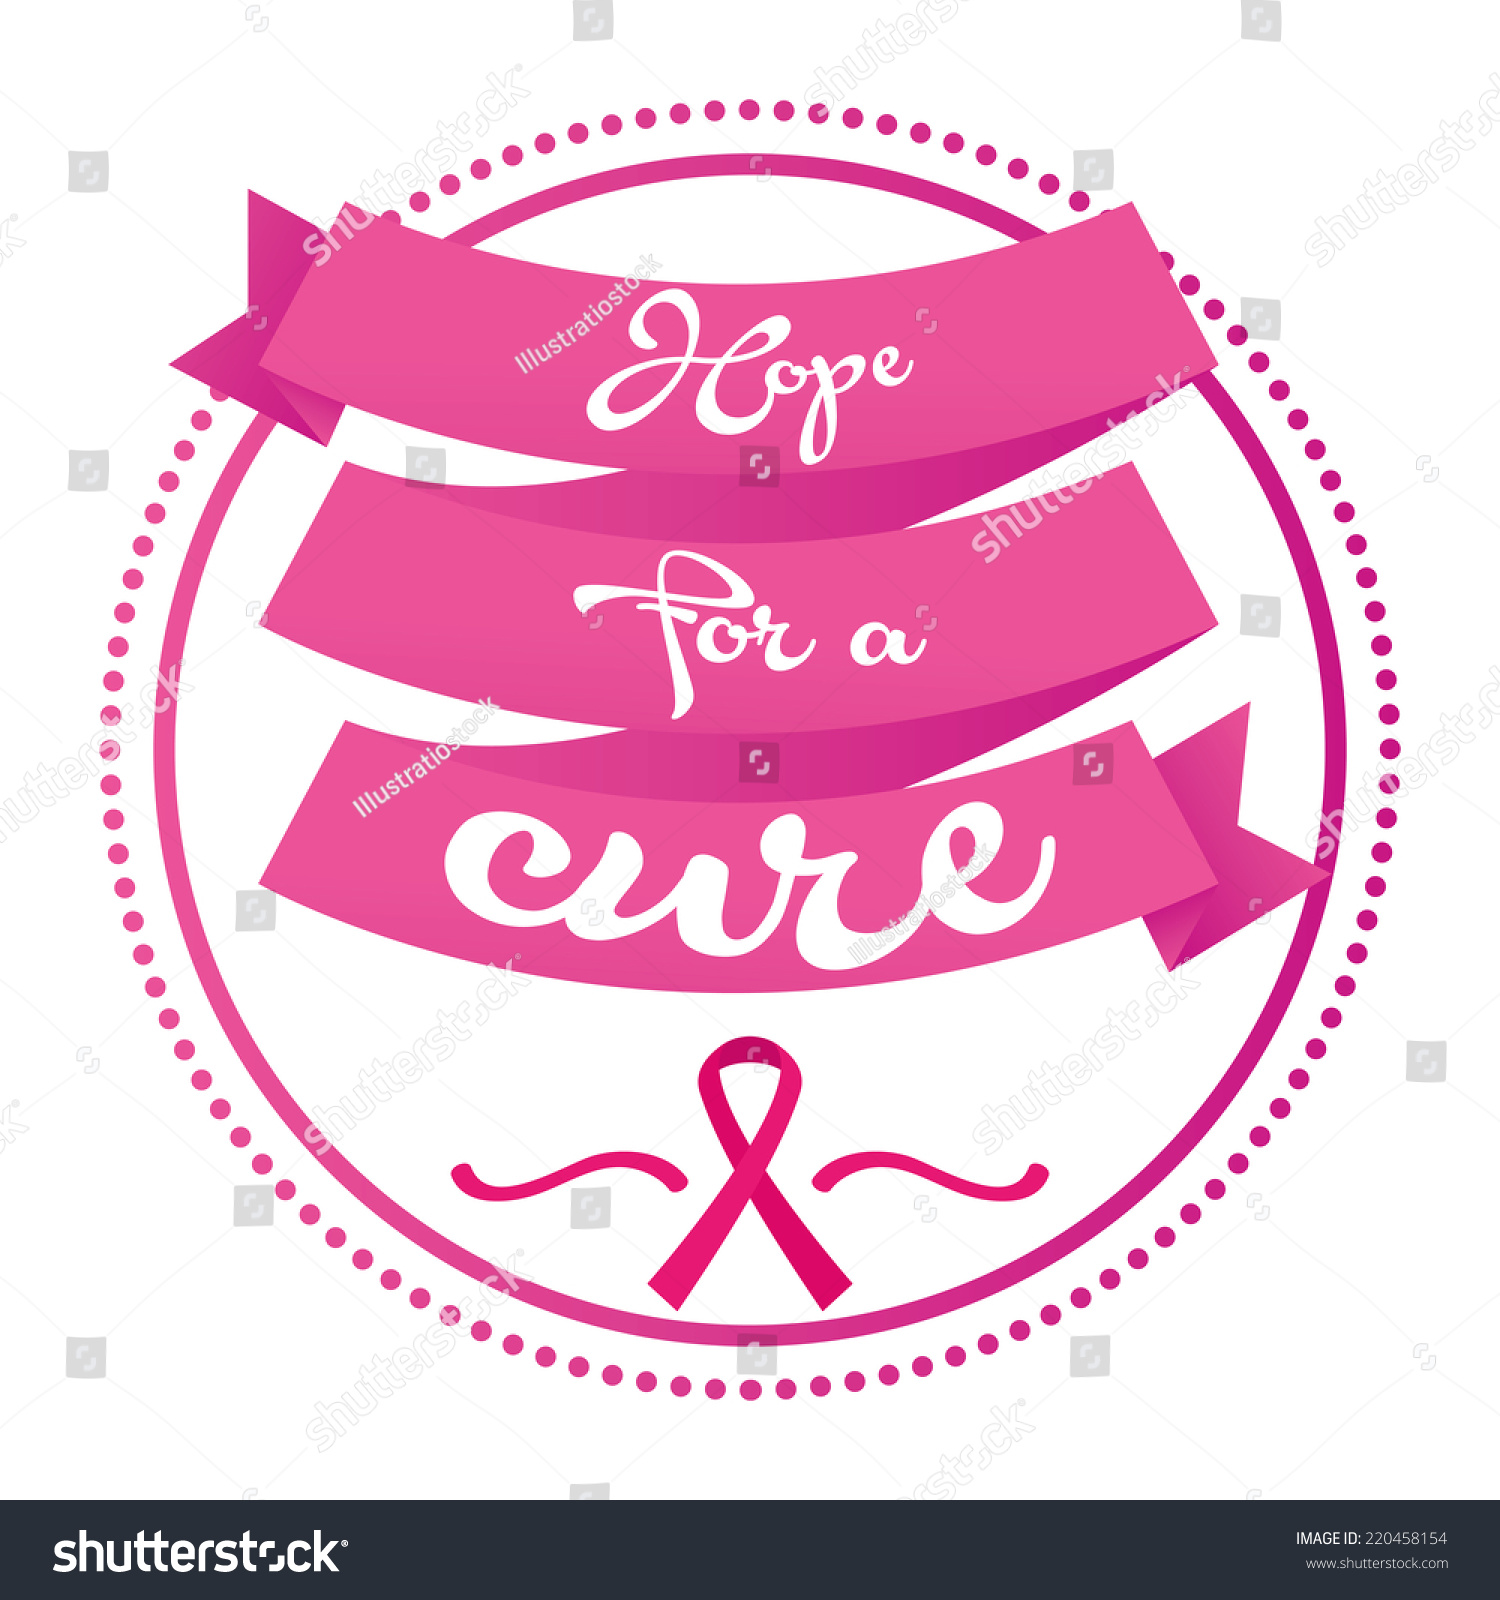 Isolated ribbon text breast cancer symbol stock vector 220458154 an isolated ribbon with text and the breast cancer symbol biocorpaavc Gallery